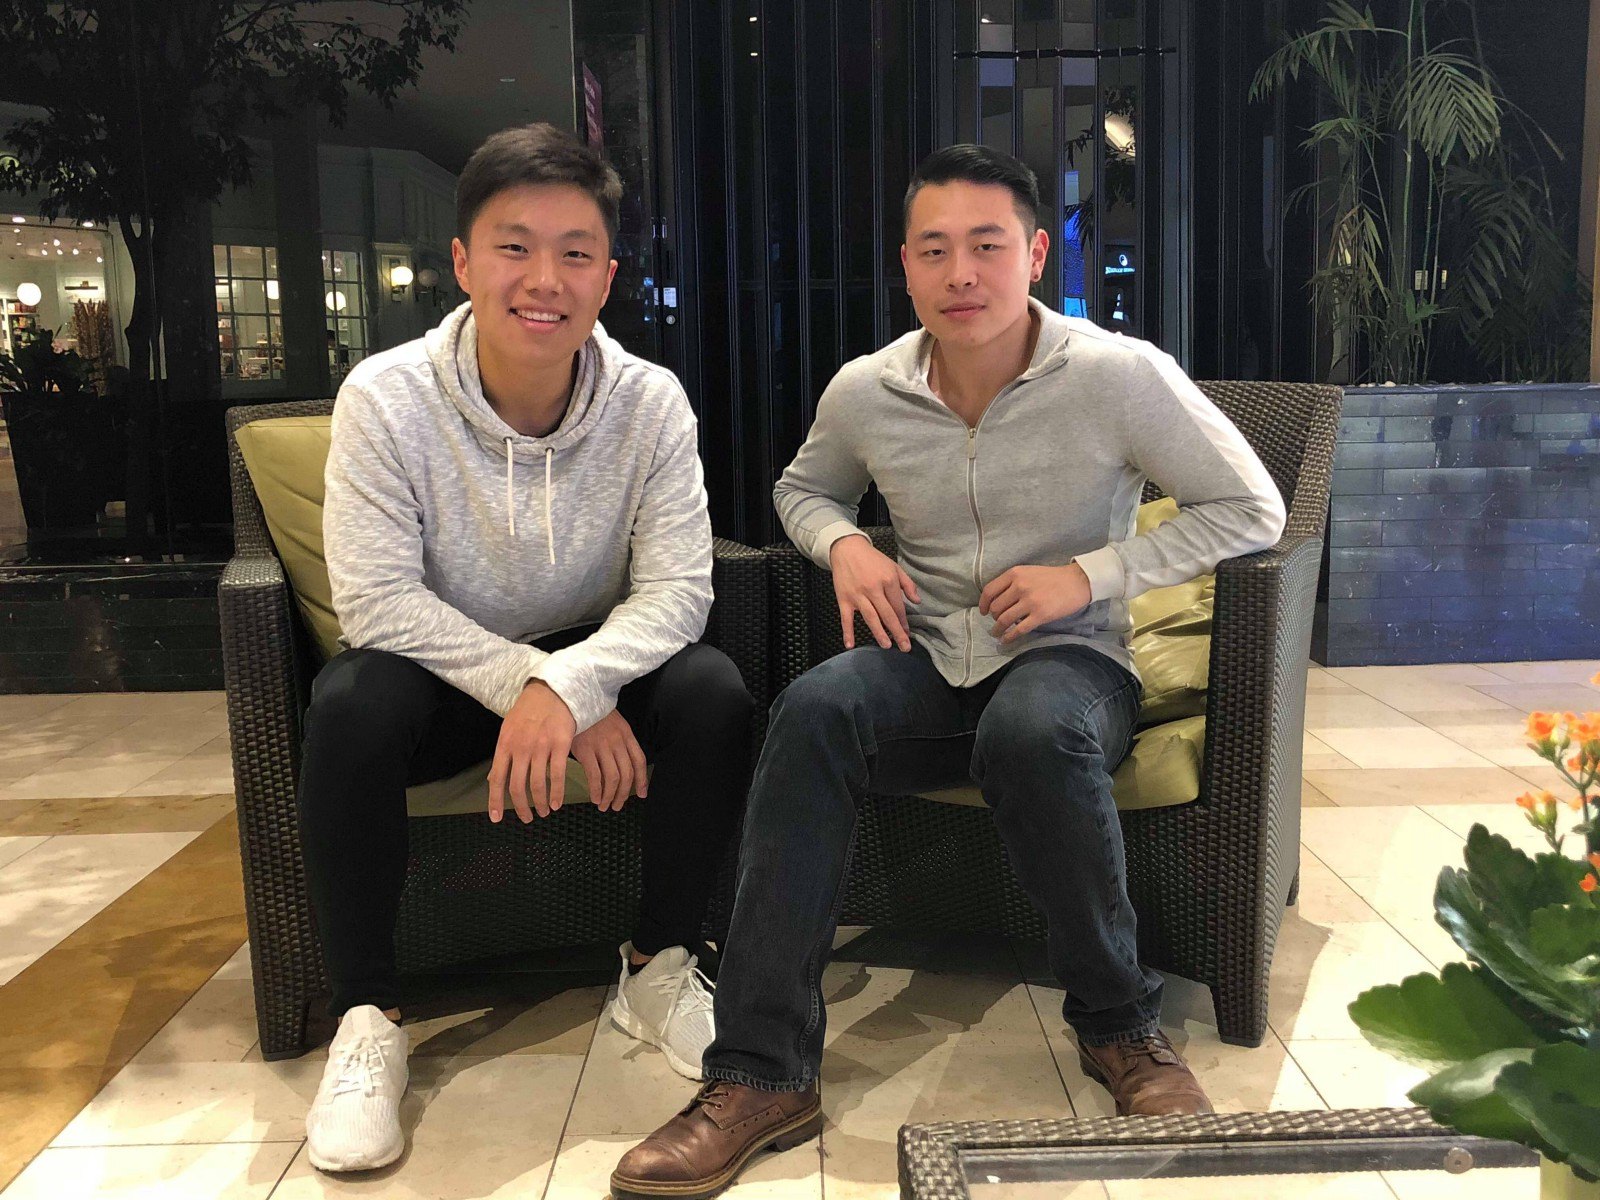 /founder-interviews-james-wu-and-allen-lu-of-adaptilab-8e3158d2a032 feature image